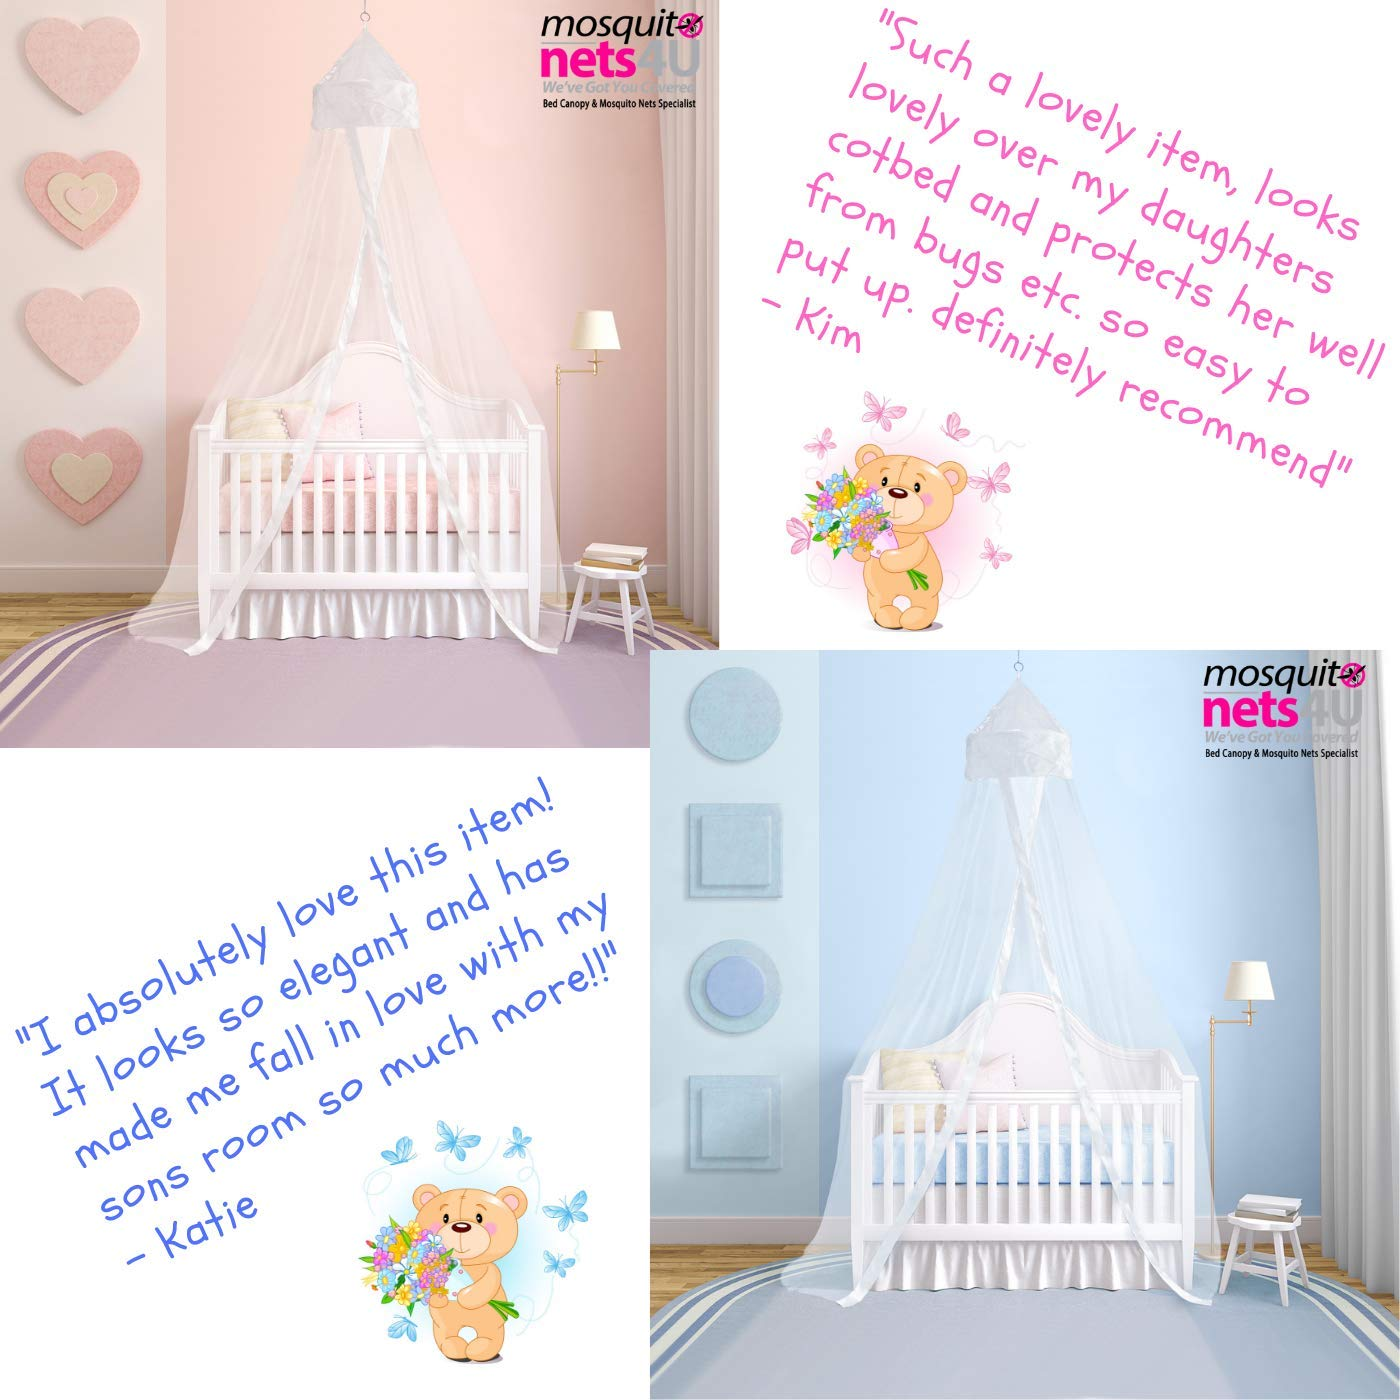 White Mosquito Nets 4 U Baby-white001 Baby Canopy Insect Protection